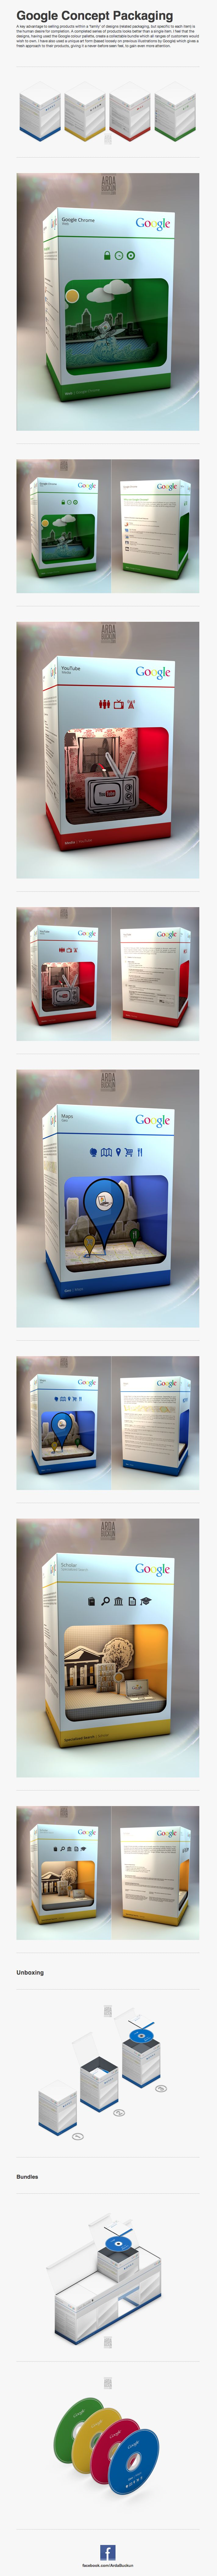 Google Concept #Packaging